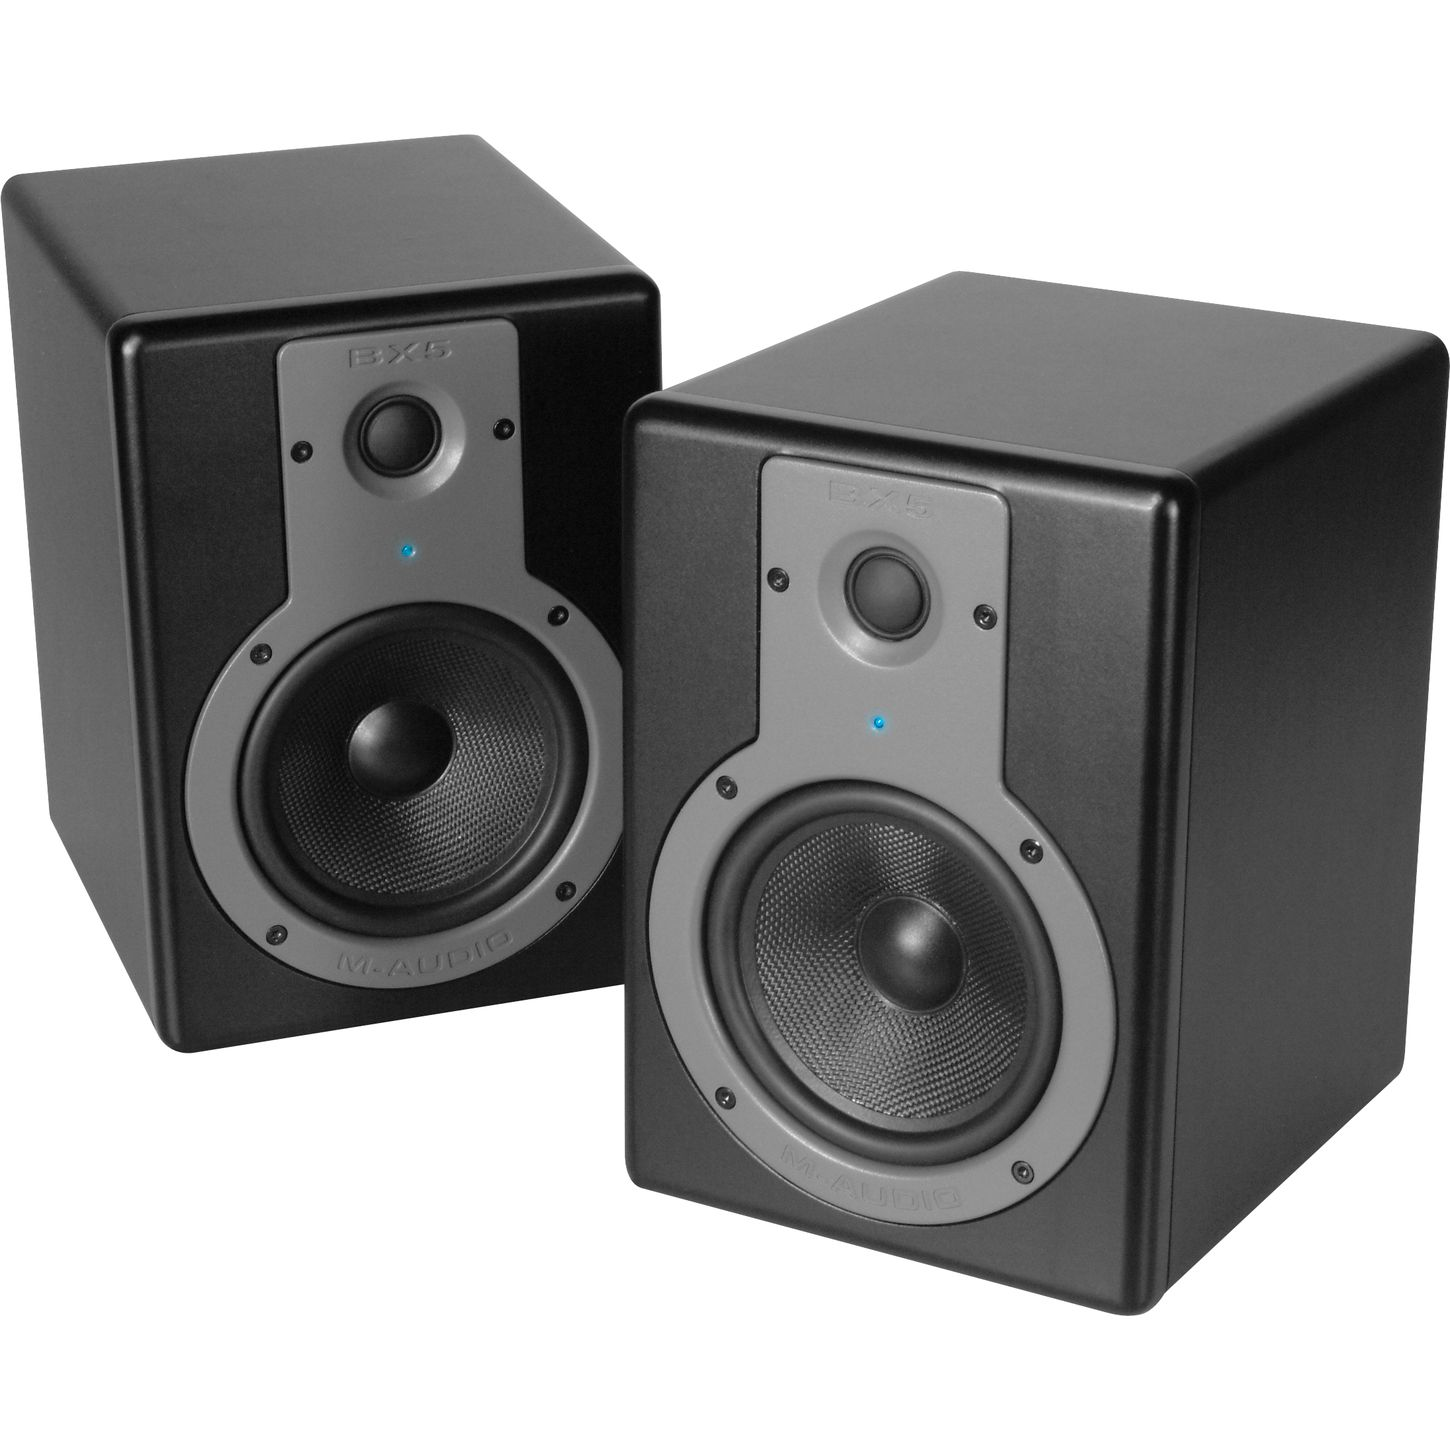 Do Studio Monitors Even Matter Recording Revolution Yamaha Hs5 Powered Monitor The Other Day I Received An Email From Trr Reader Sam He Asked If Mixing On Was Pointless Seeing As How Most People Arent Ever Going To